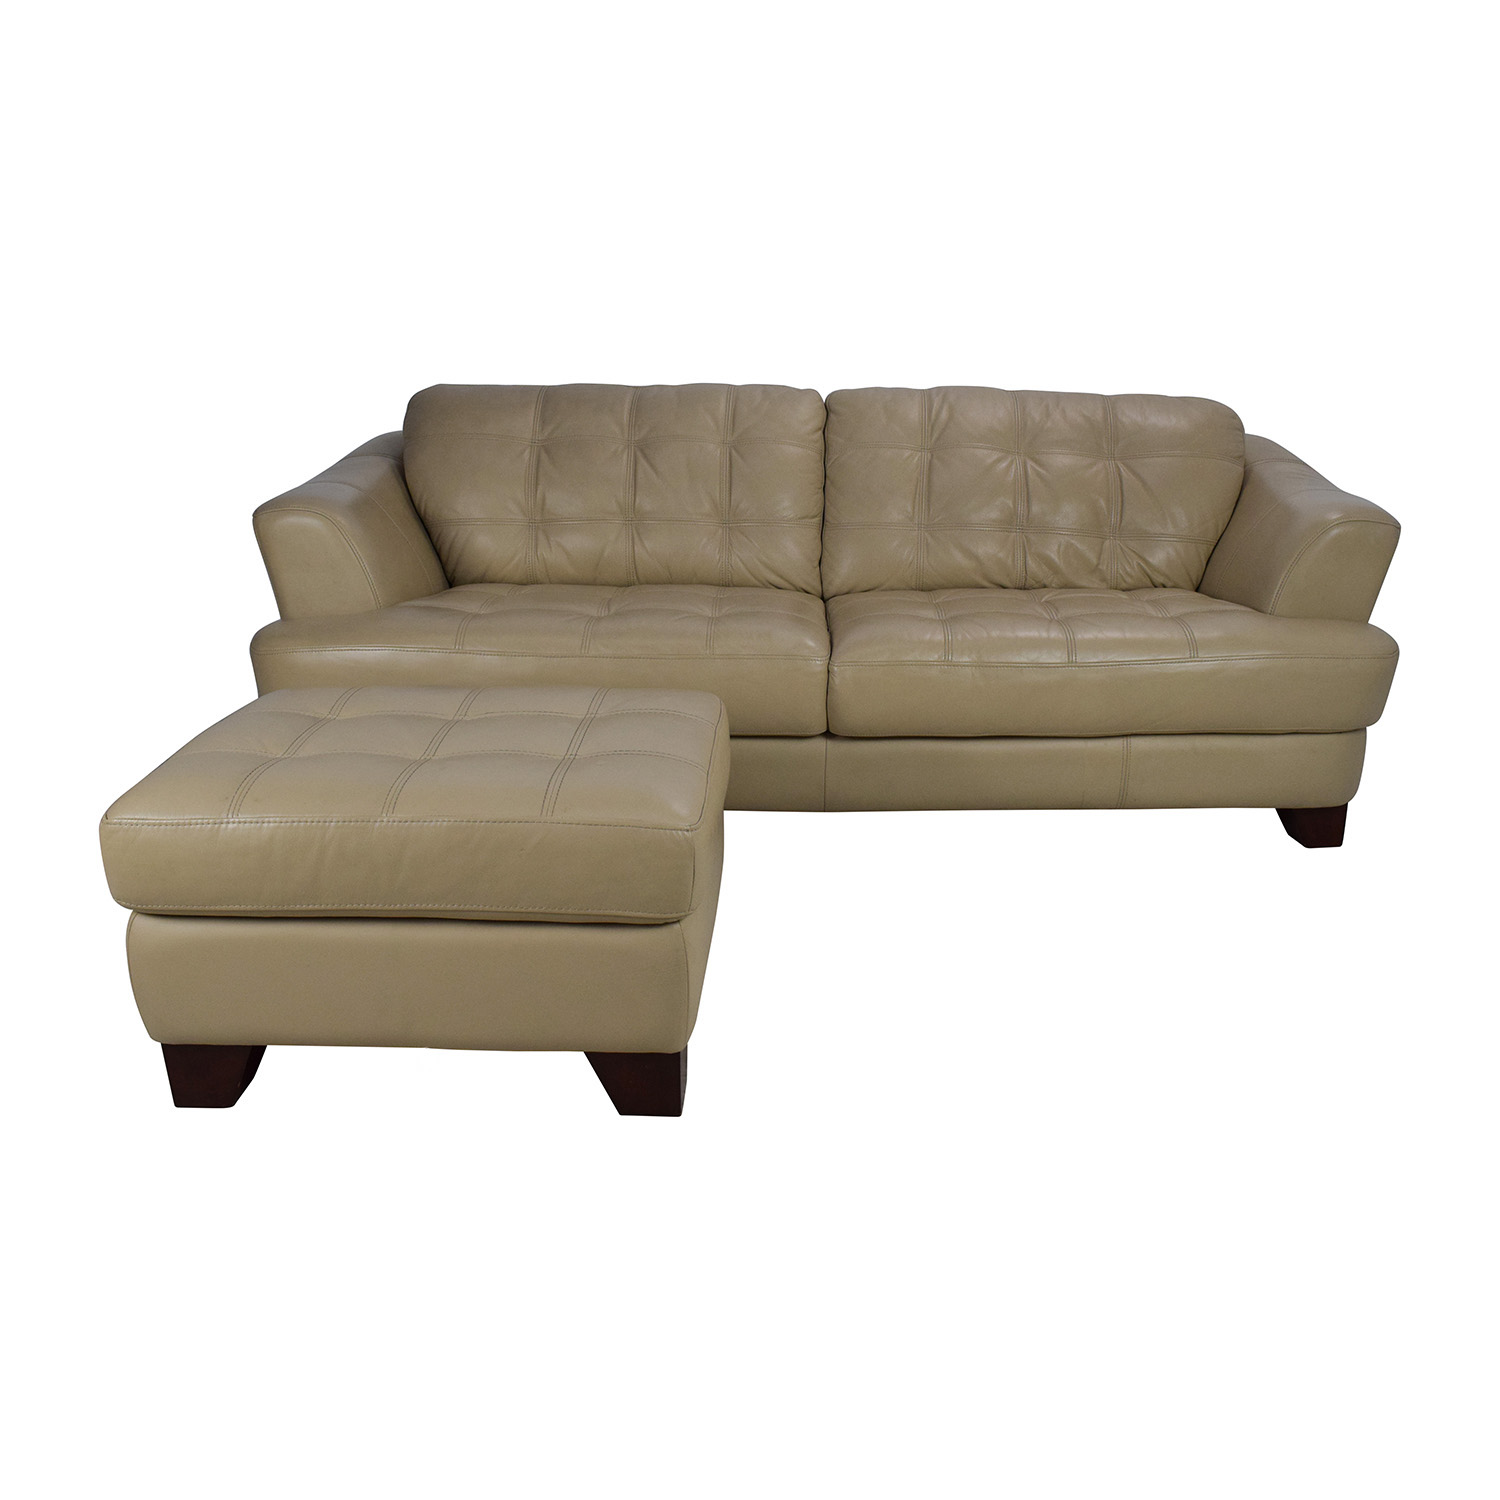 Bobs furniture leather sofa no phony gimmicks just pure for Playpen sectional sofa bobs